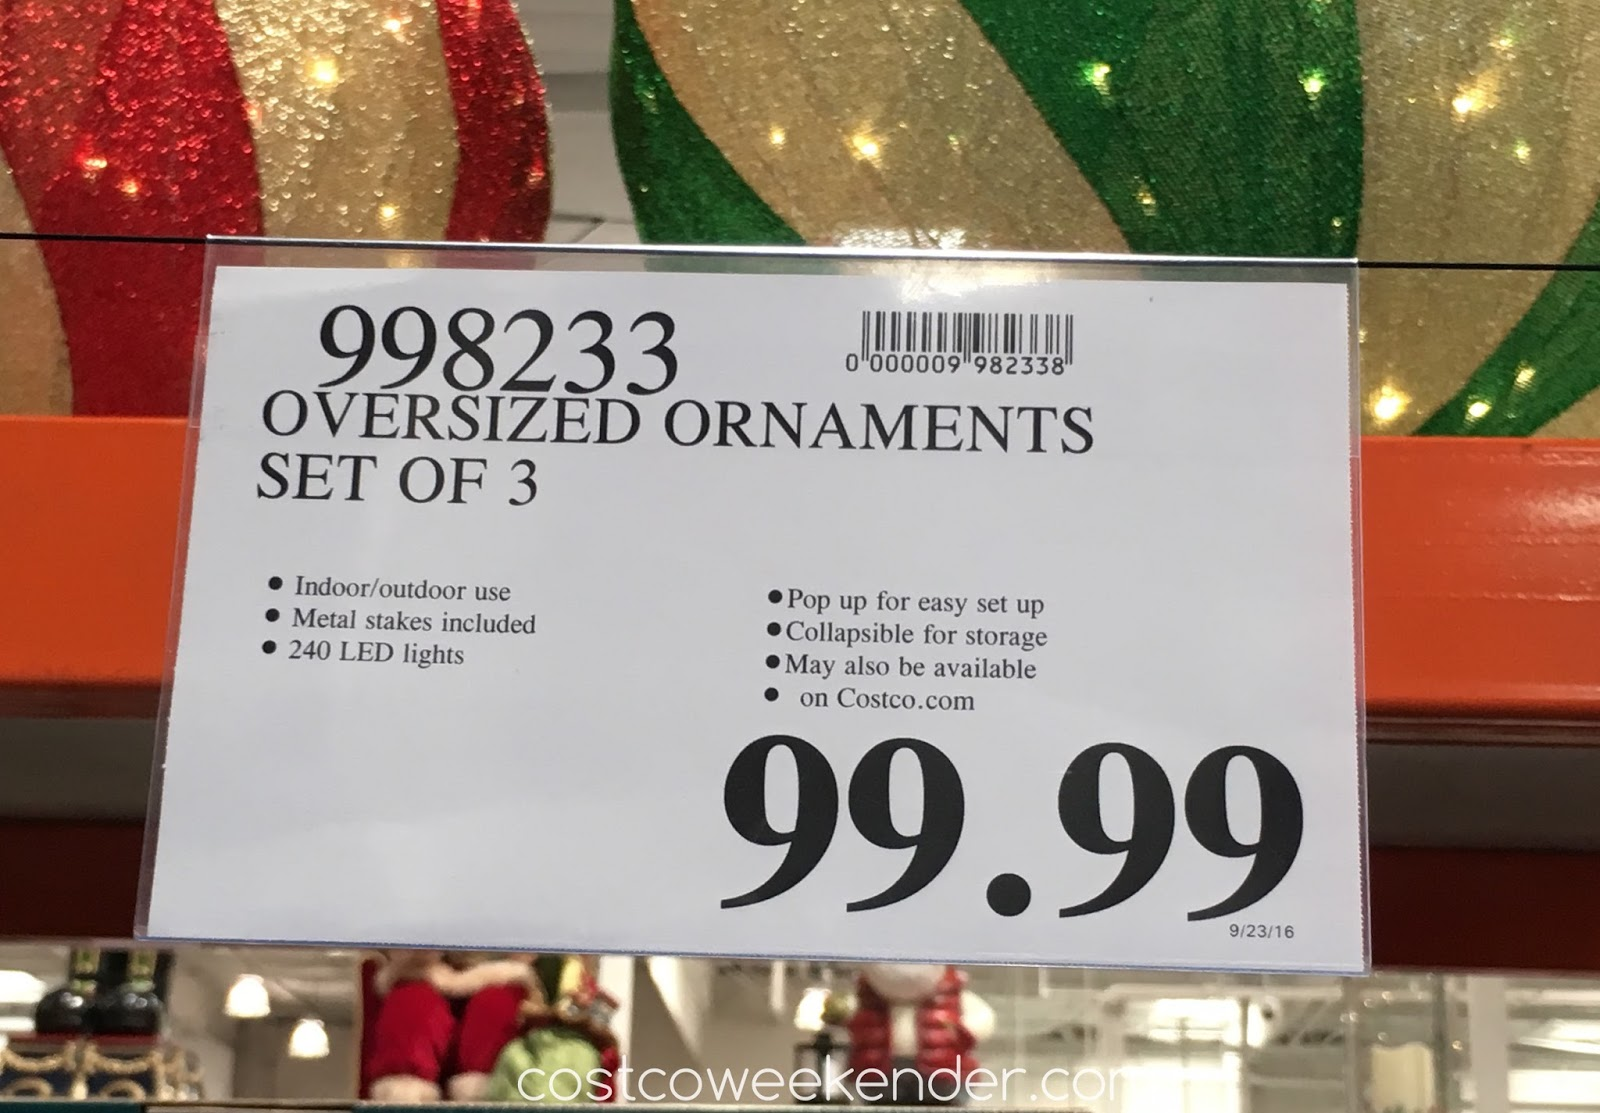 Deal for the Set of 3 Oversized LED Ornaments at Costco